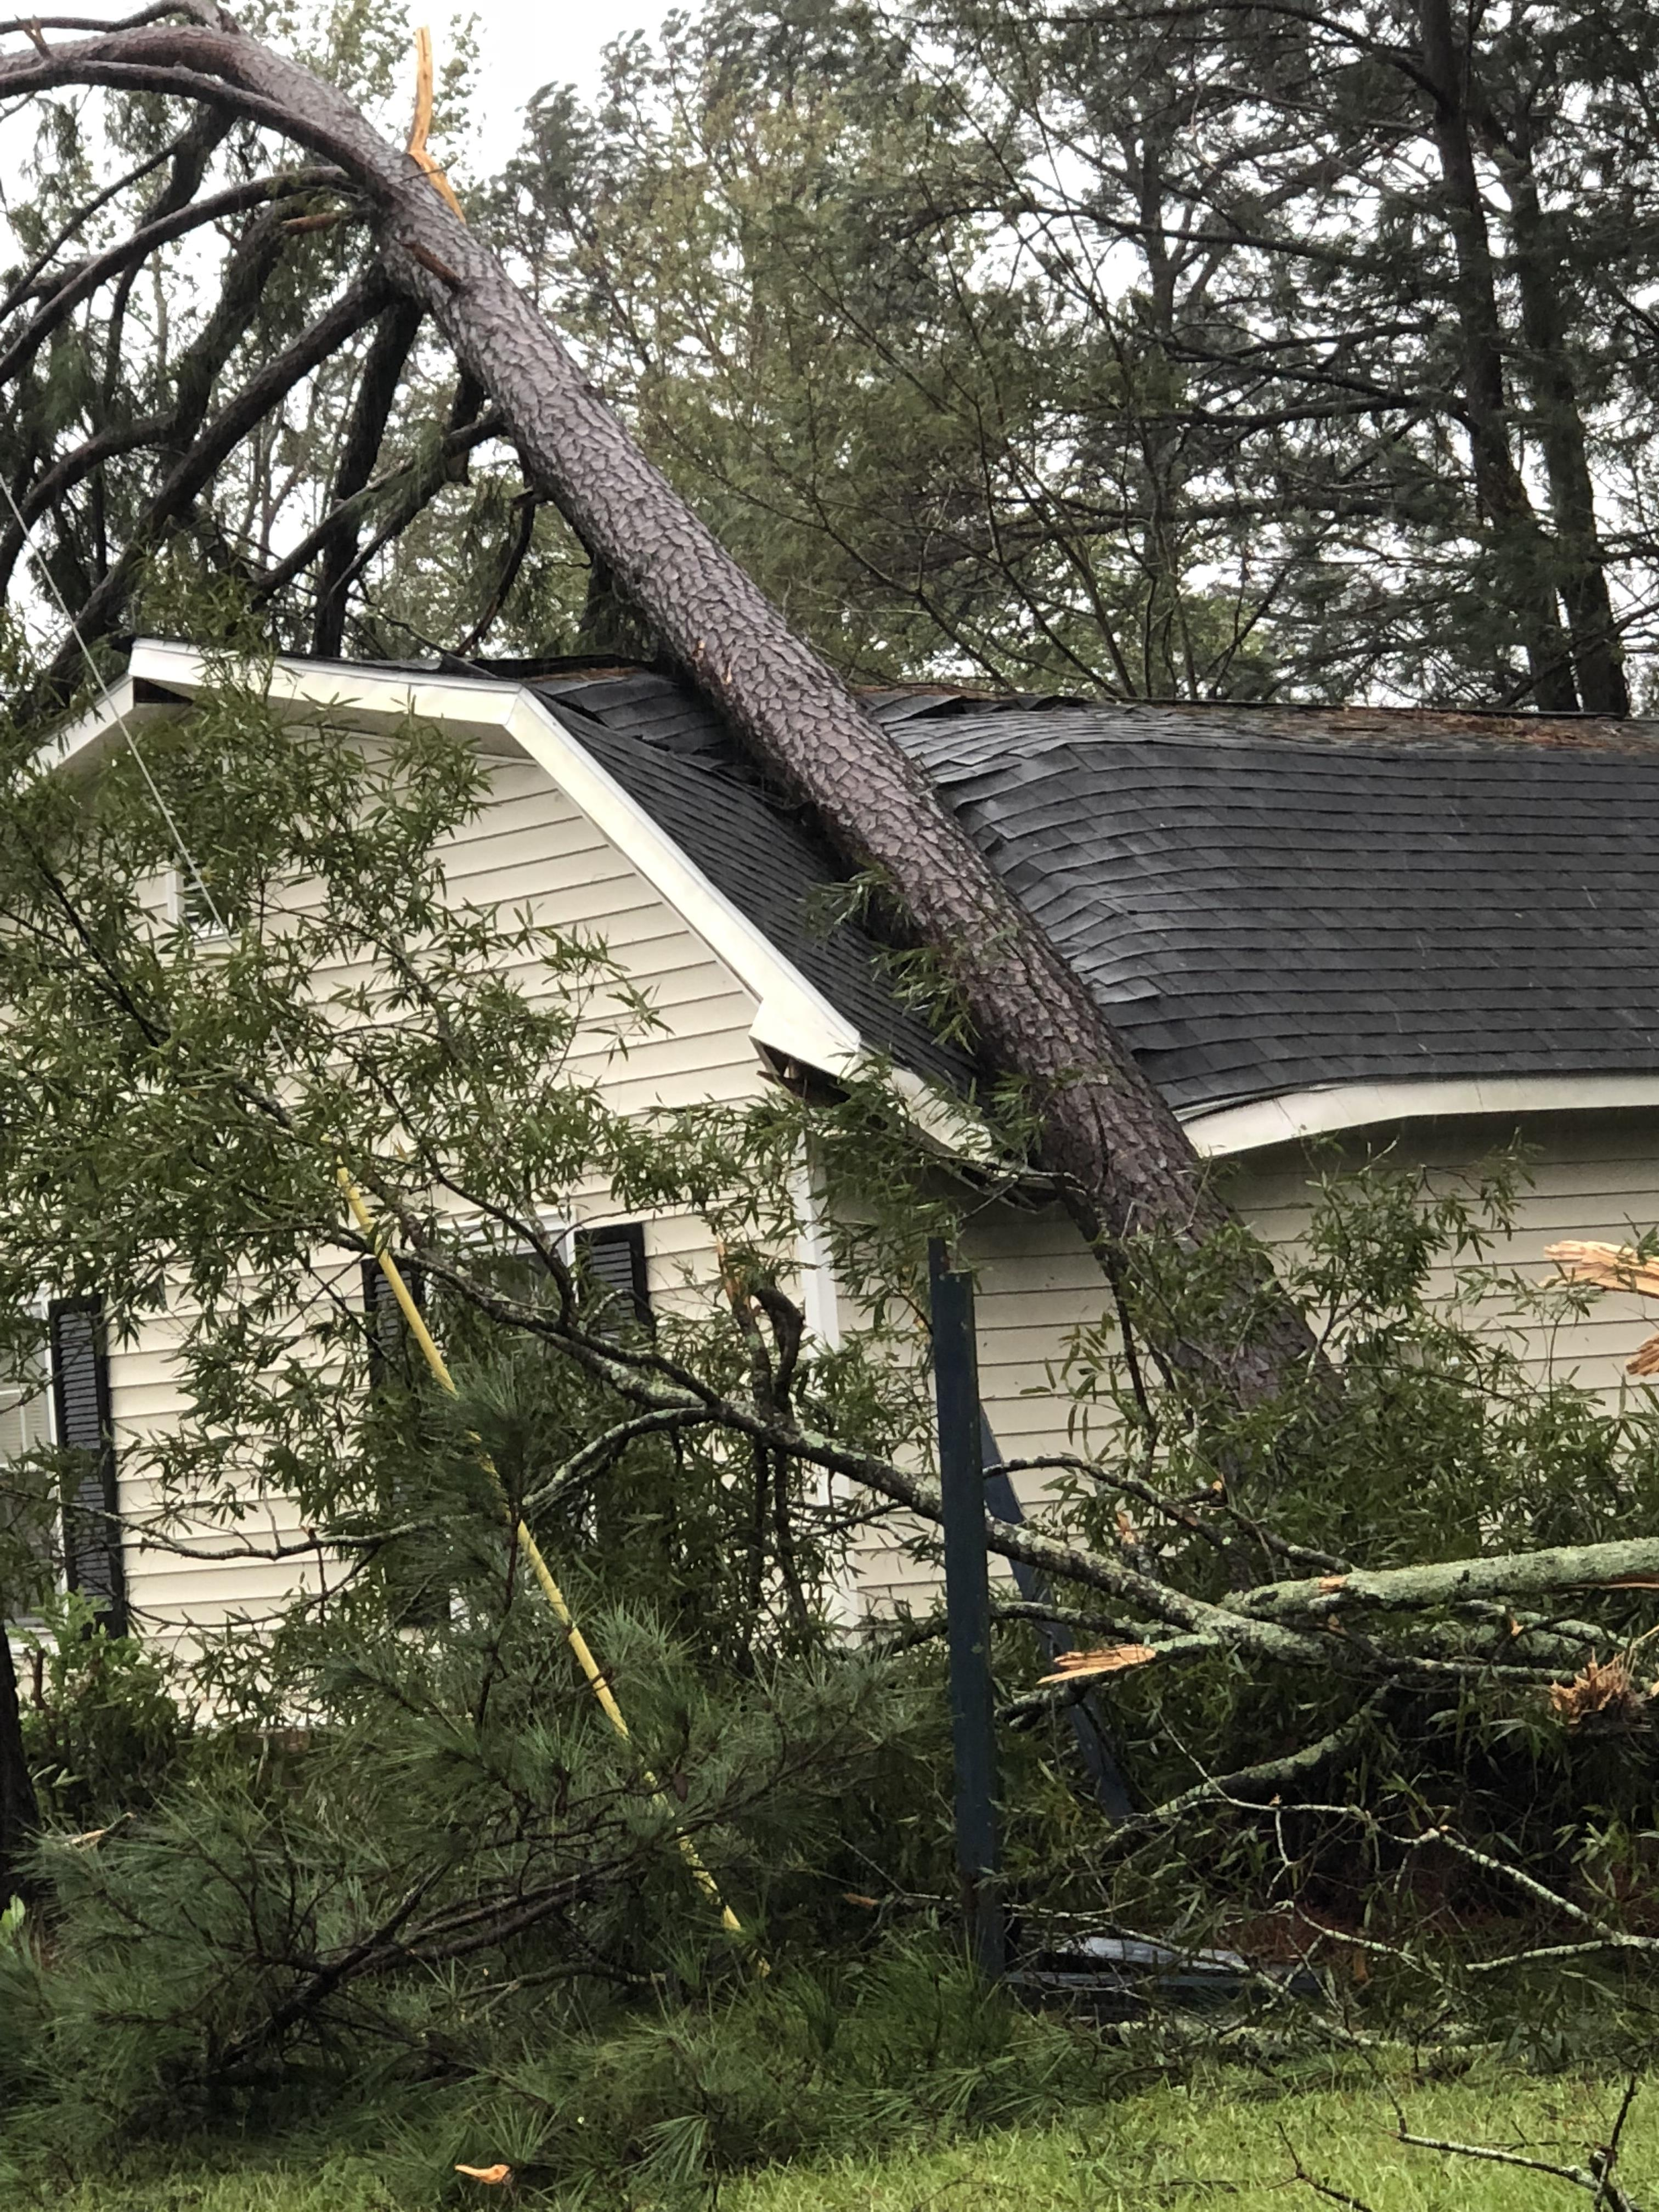 "<div class=""meta image-caption""><div class=""origin-logo origin-image wtvd""><span>WTVD</span></div><span class=""caption-text"">A tree fell on a house in Jacksonville, N.C. (ABC11 Eyewitness - Gary Bowens)</span></div>"